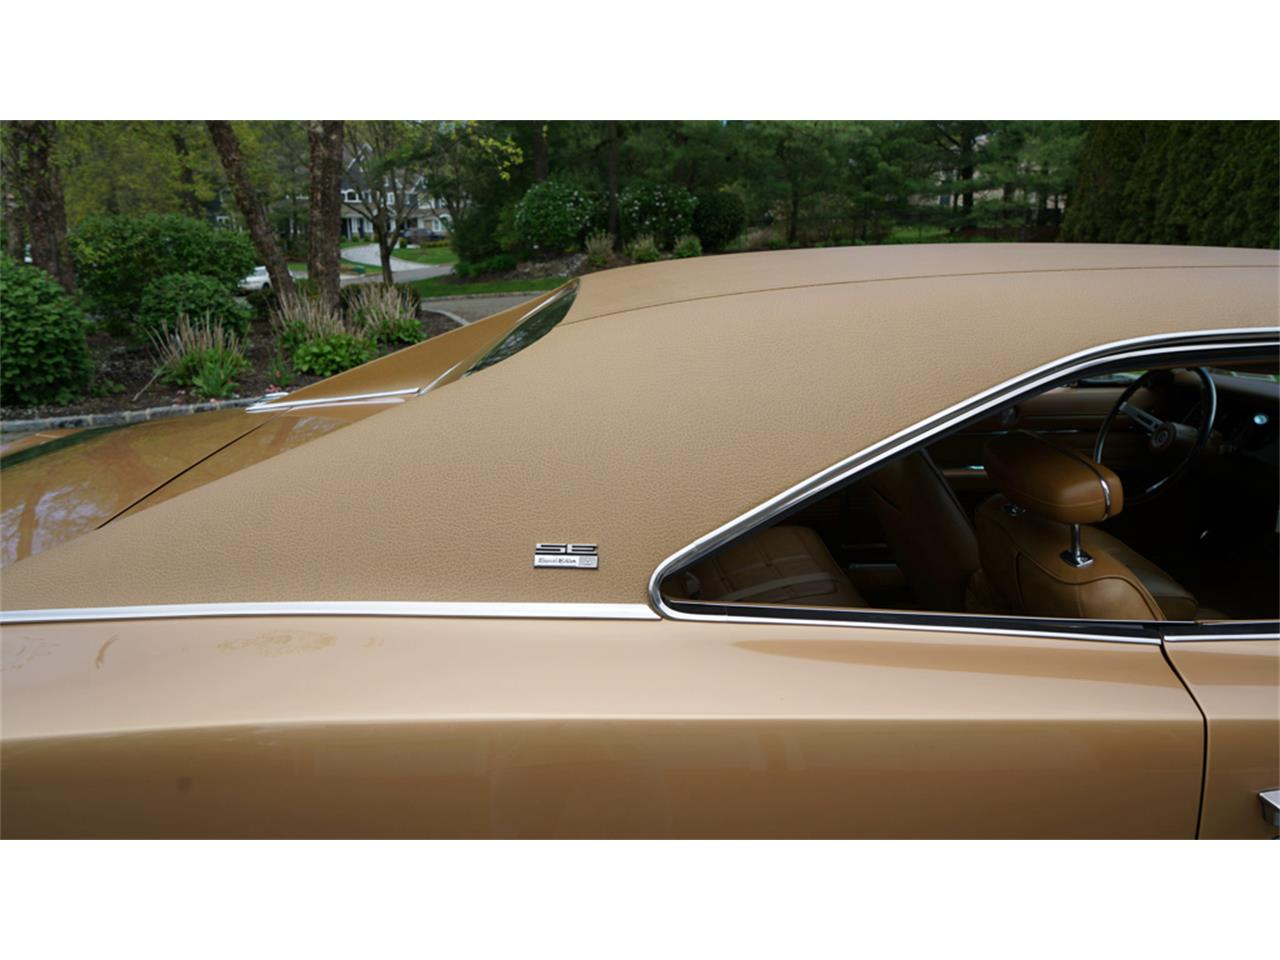 Large Picture of 1969 Dodge Charger R/T located in New York - $83,900.00 - Q1UM